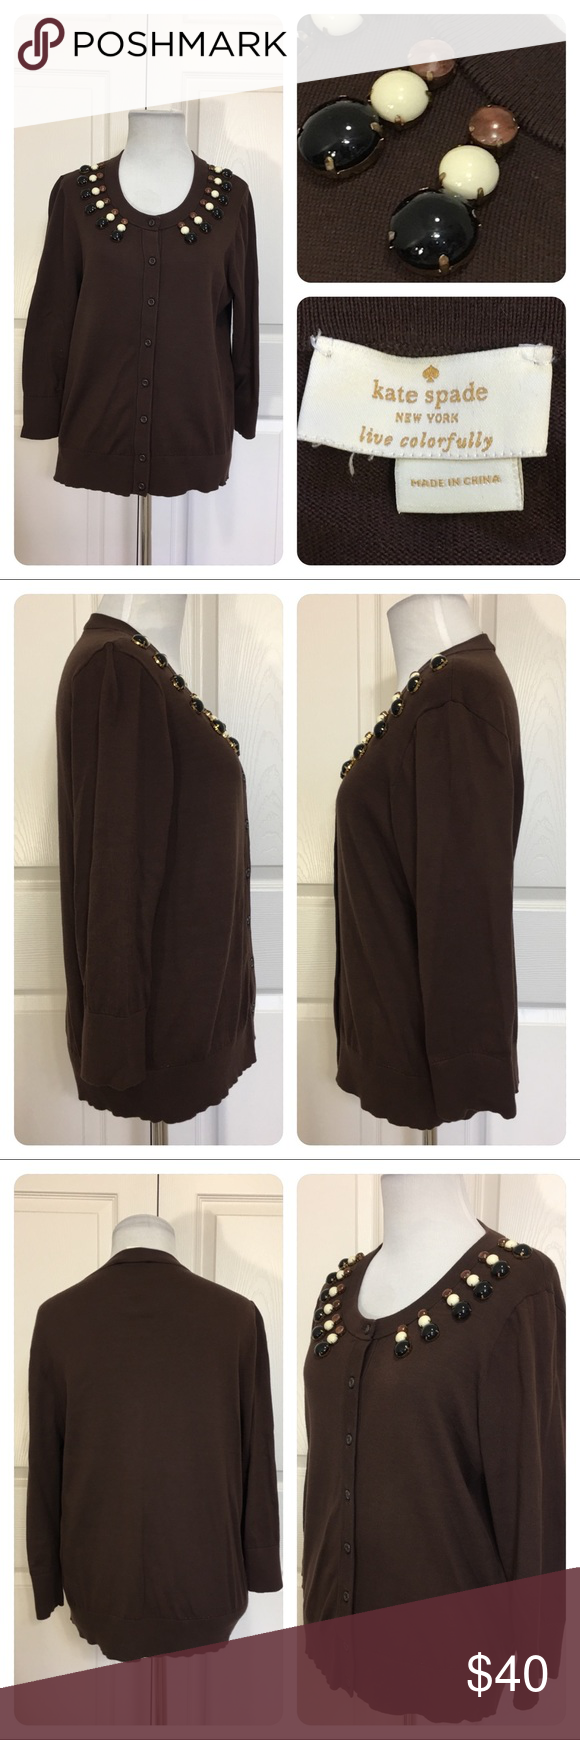 Kate Spade brown cotton beaded cardigan Great brown cotton ...